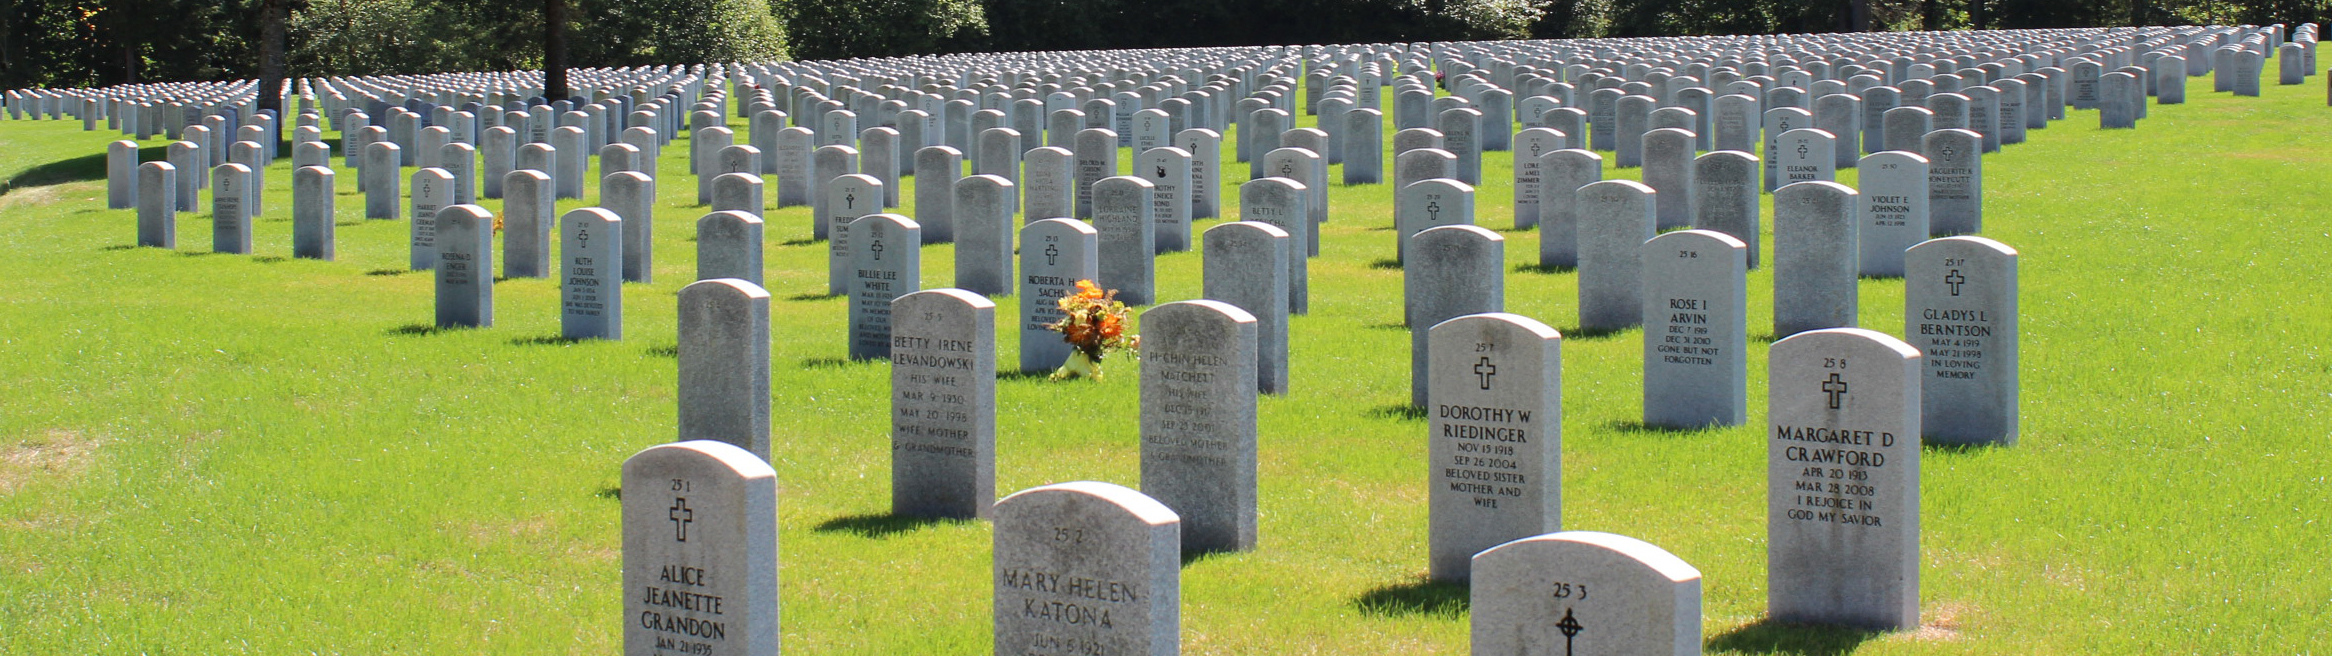 Tahoma National Cemetery Grave Markers